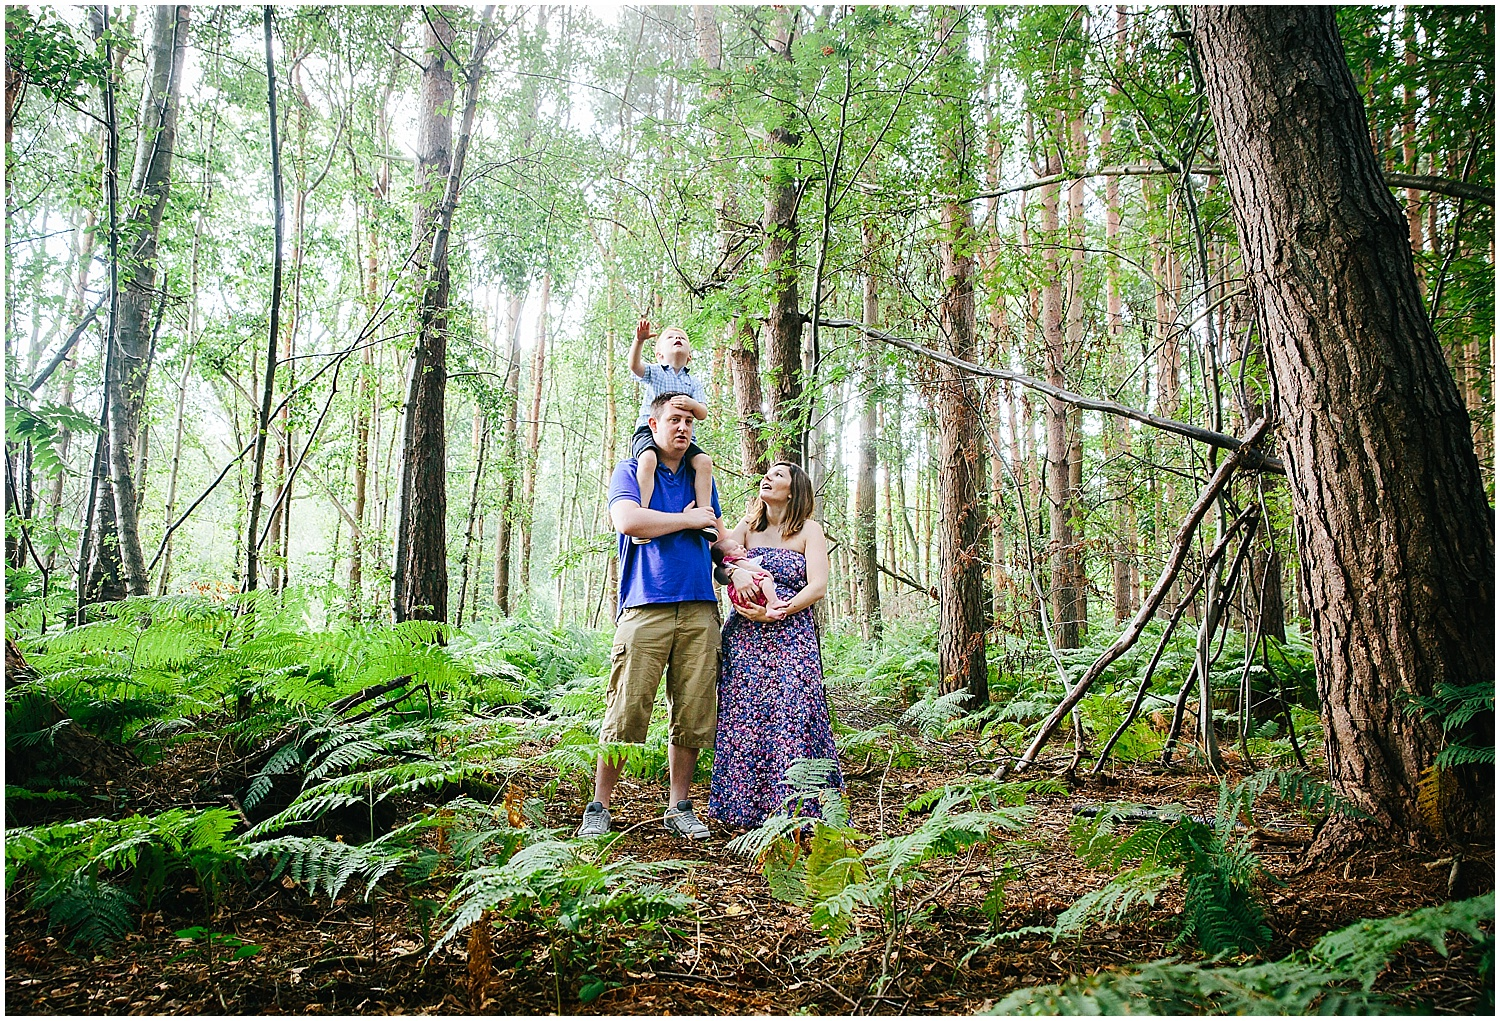 family portrait tall trees ferns woodland ashford kent kids photography